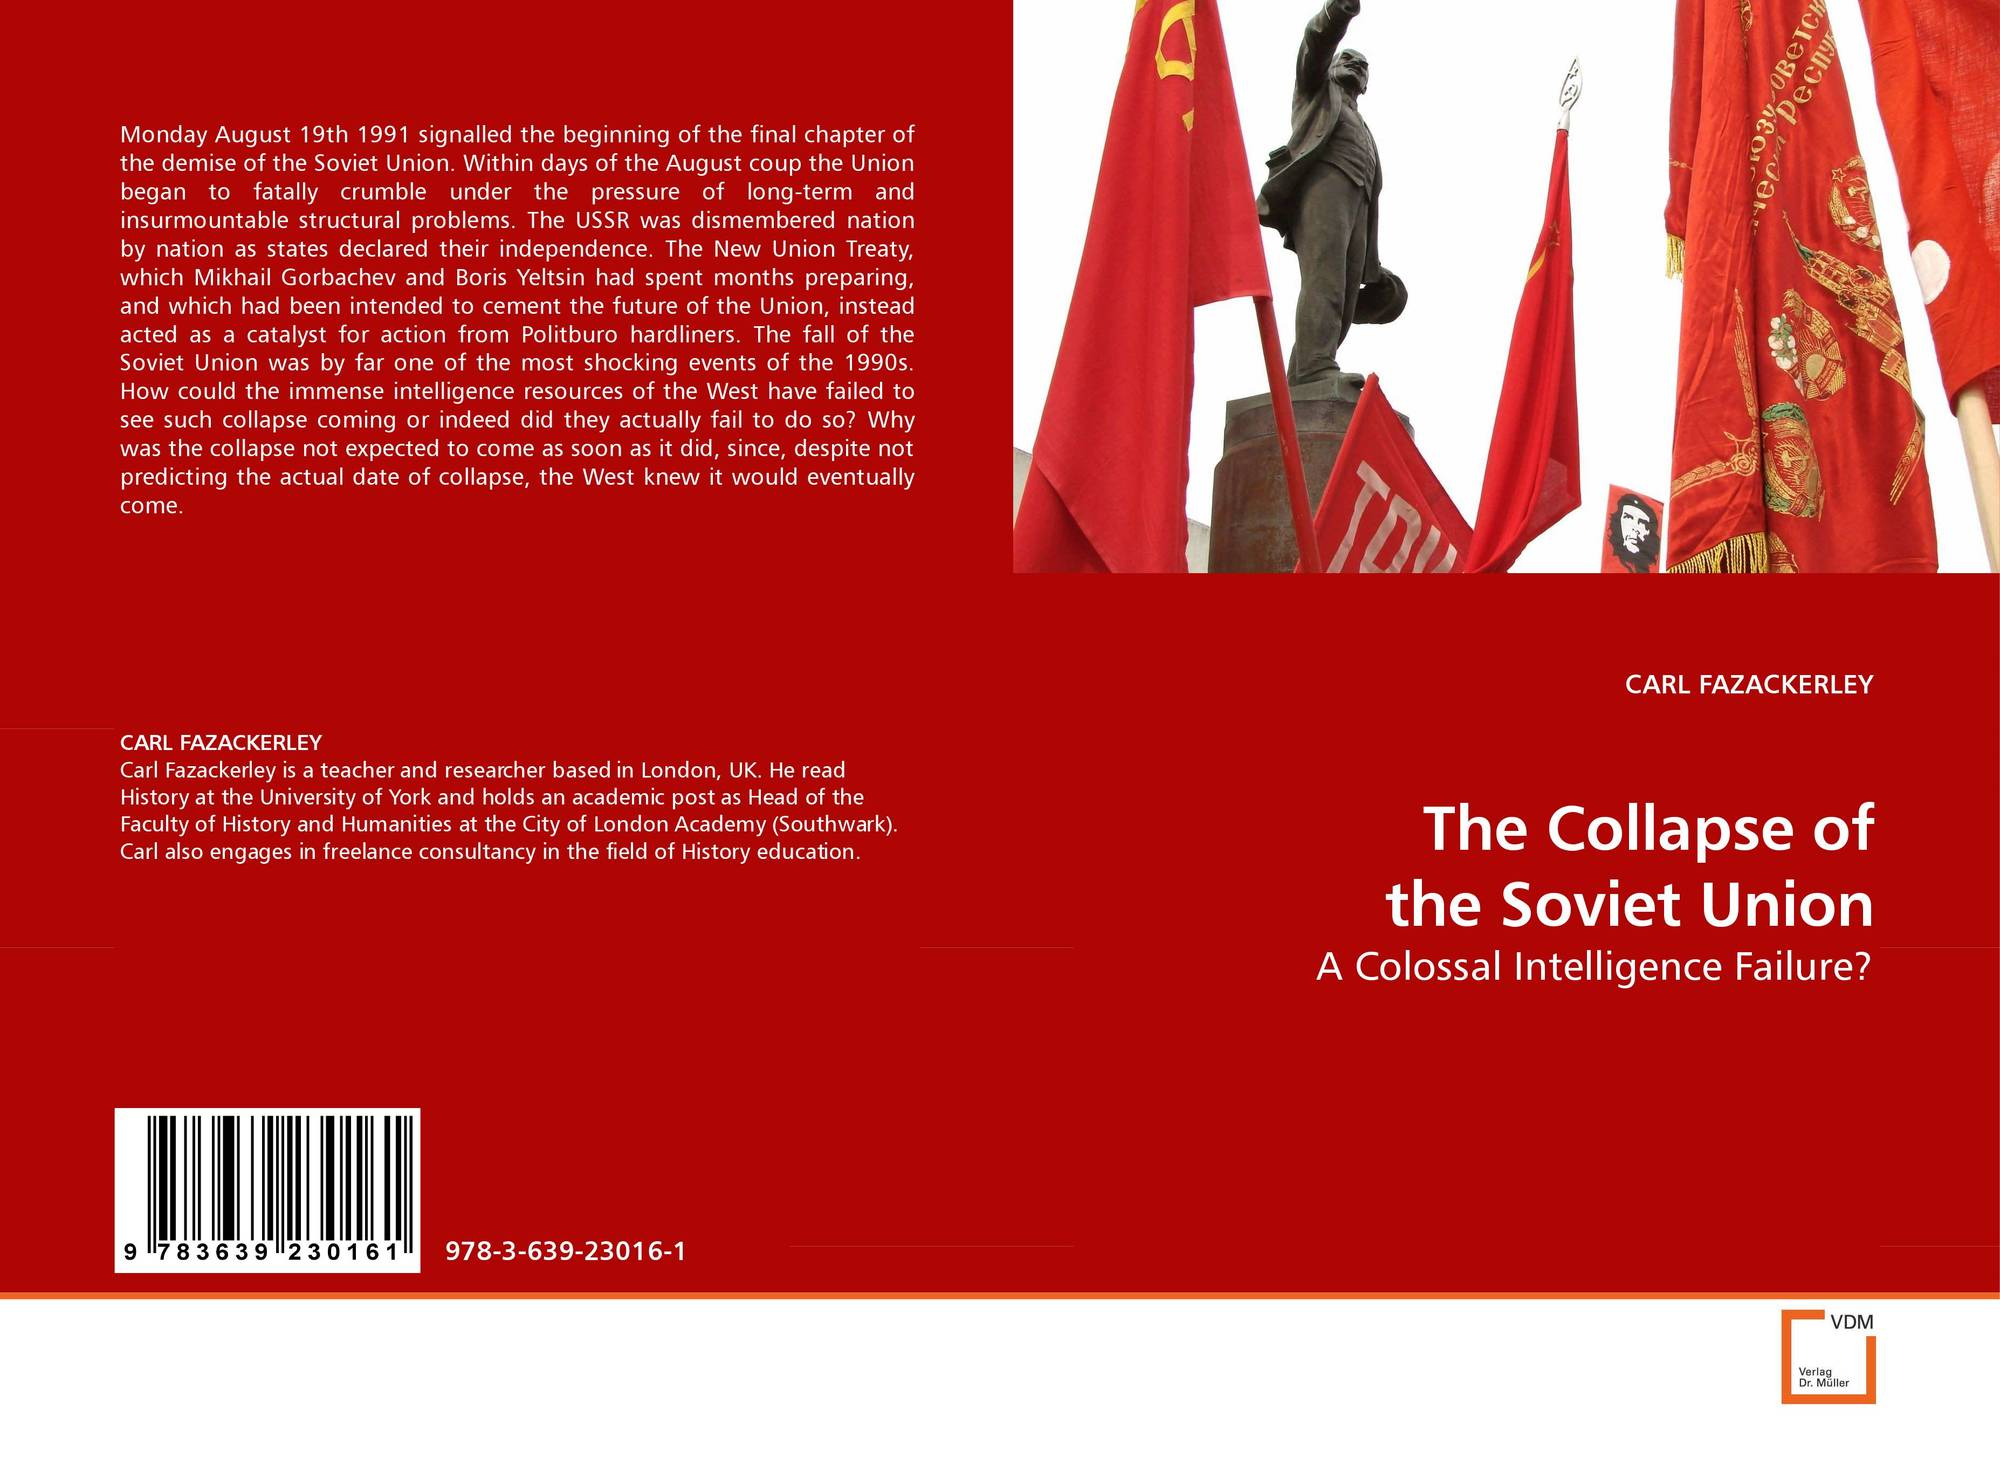 the collapse of the soviet bloc Soviet bloc, collapse of communism in • gobachev sought to end maintaining the soviet bloc, as it was costly • releases sinatra doctrine 1989: soviet bloc countries can work towards socialism 'their way' •doctrine has dramatic effects across the soviet bloc.